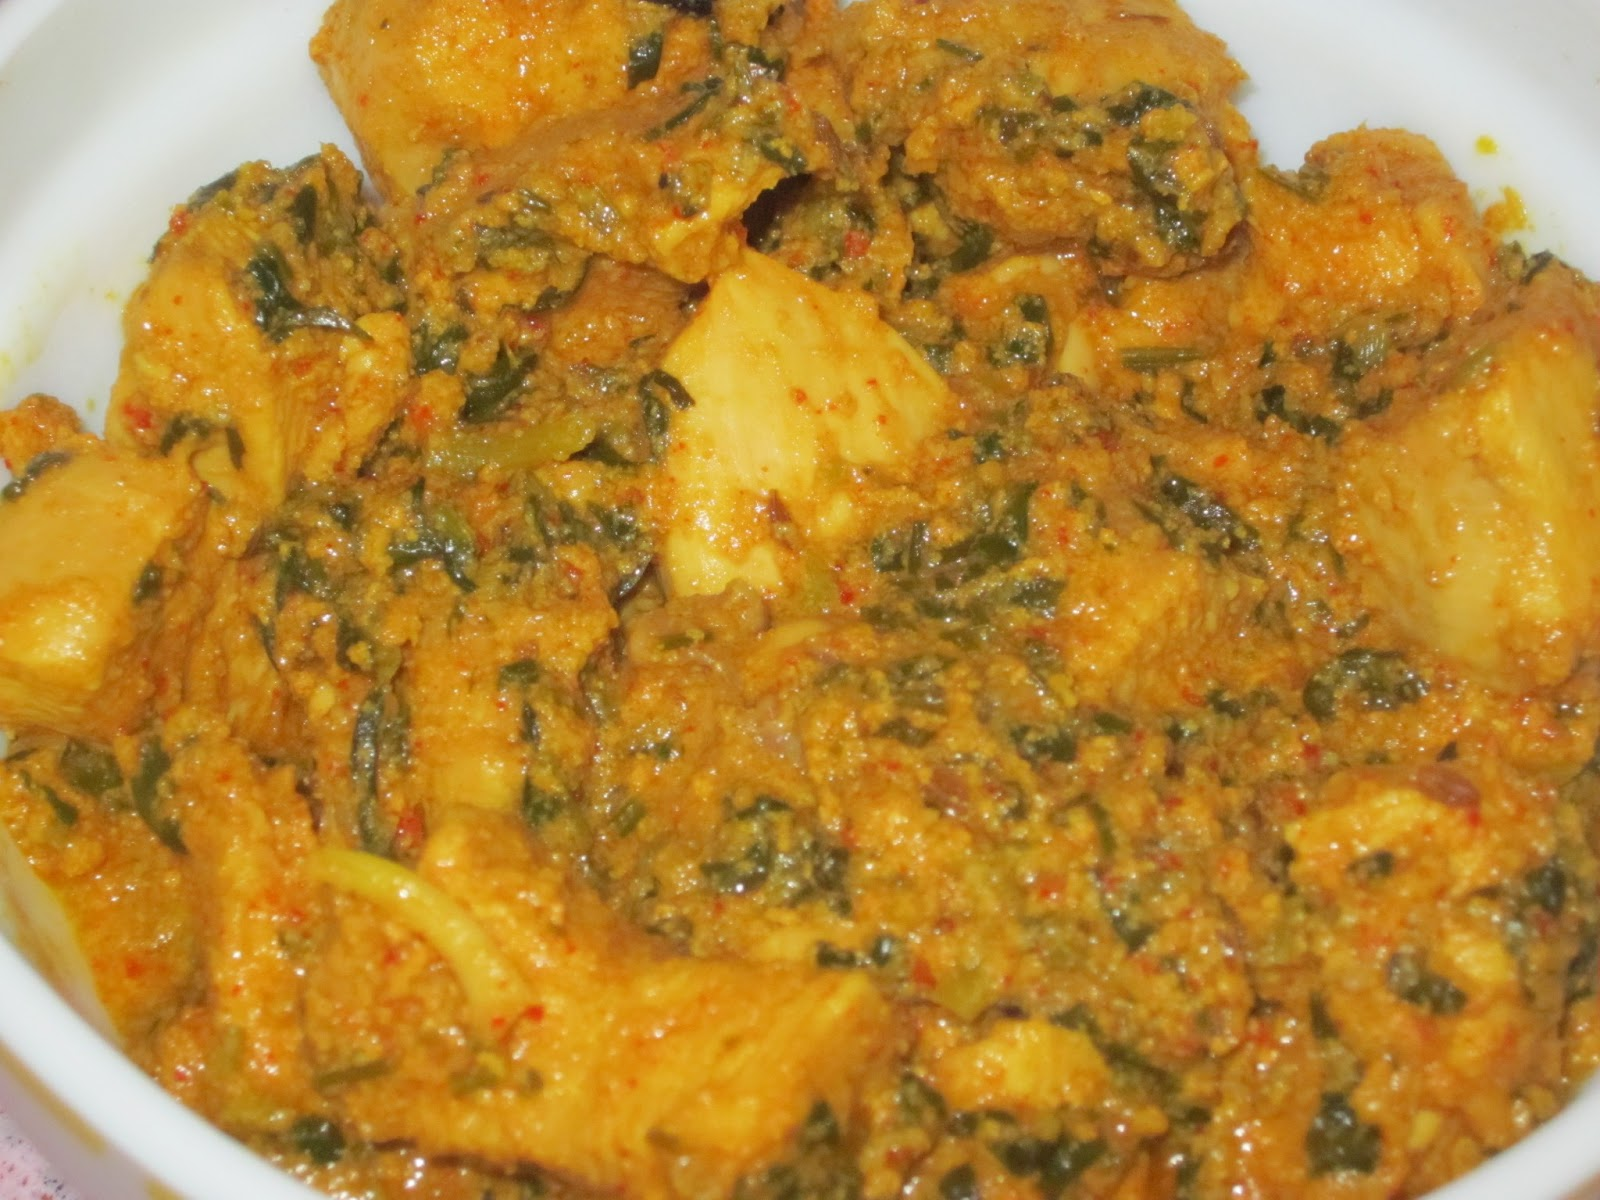 Methi Murgh - Chicken Curry with Fenugreek Leaves